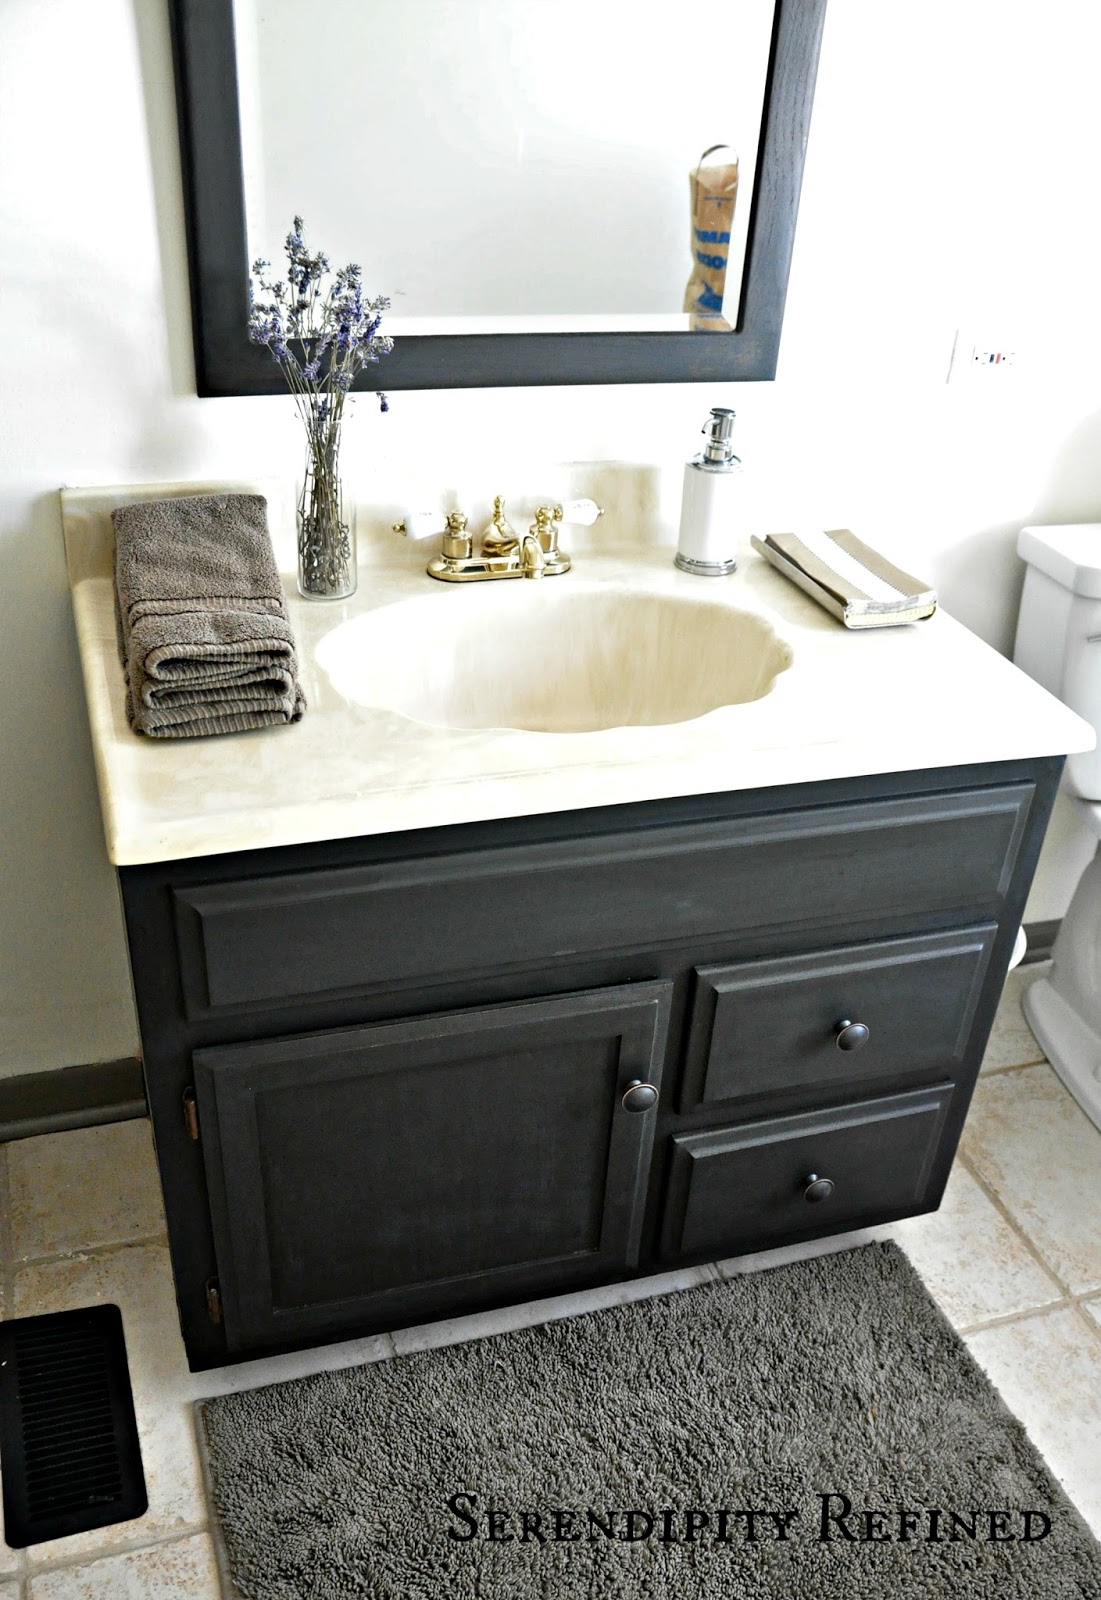 Ideal Serendipity Refined Blog How to Update Oak and Brass Bathroom Fixtures With Spray Paint and Chalk Paint